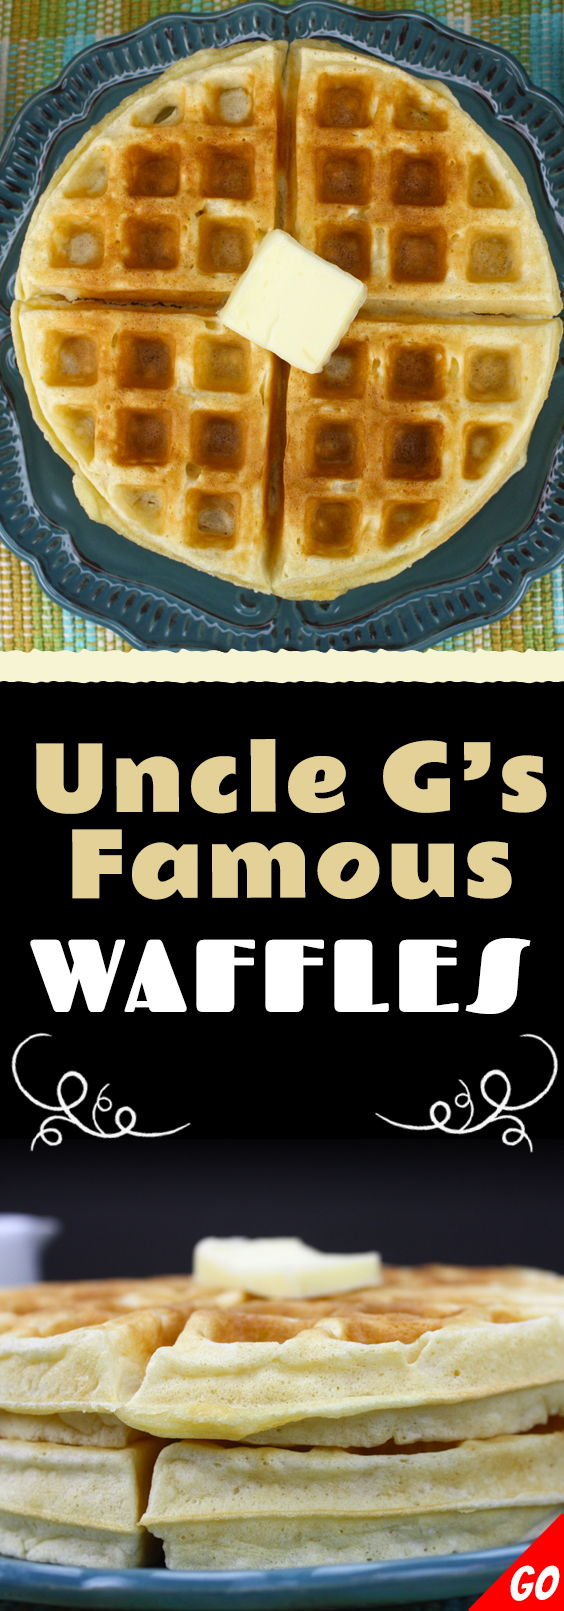 Uncle G's Famous Waffles - Buttery, crispy outside, soft, tender inside! The most amazing waffle you have ever eaten!